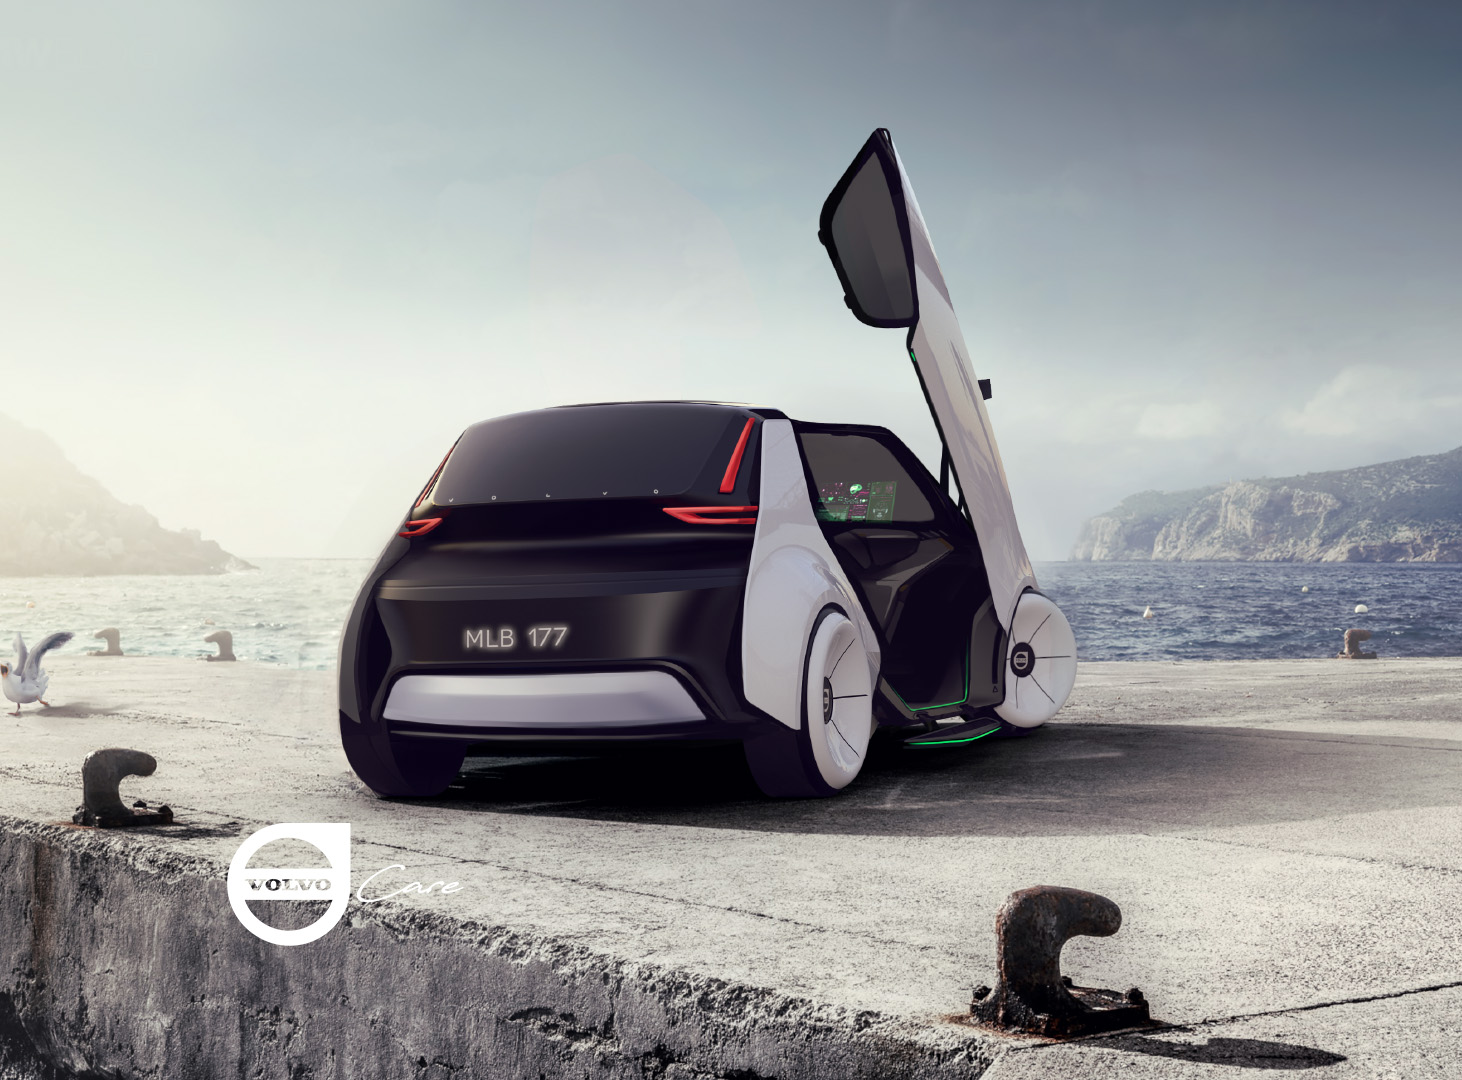 Volvo Wellbeing in 2030